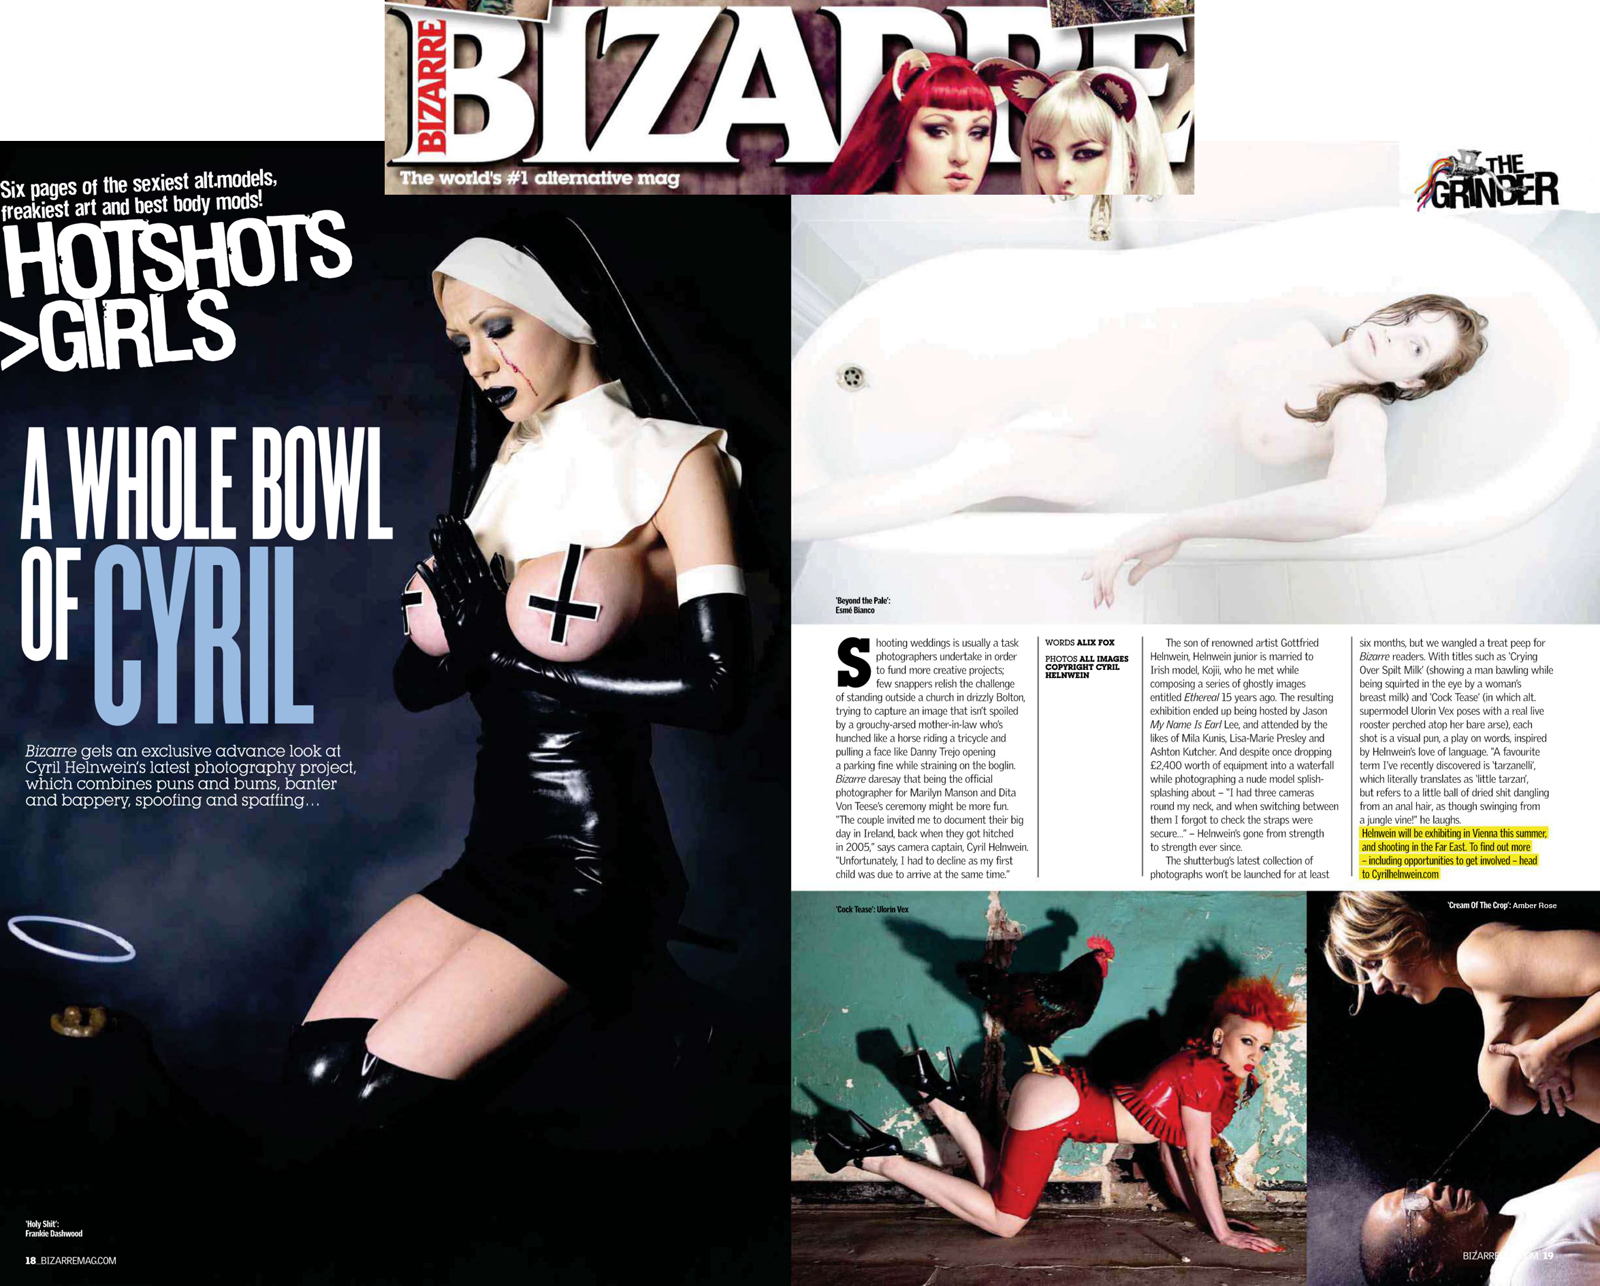 Bizarre Magazine article and interview Cyril Helnwein